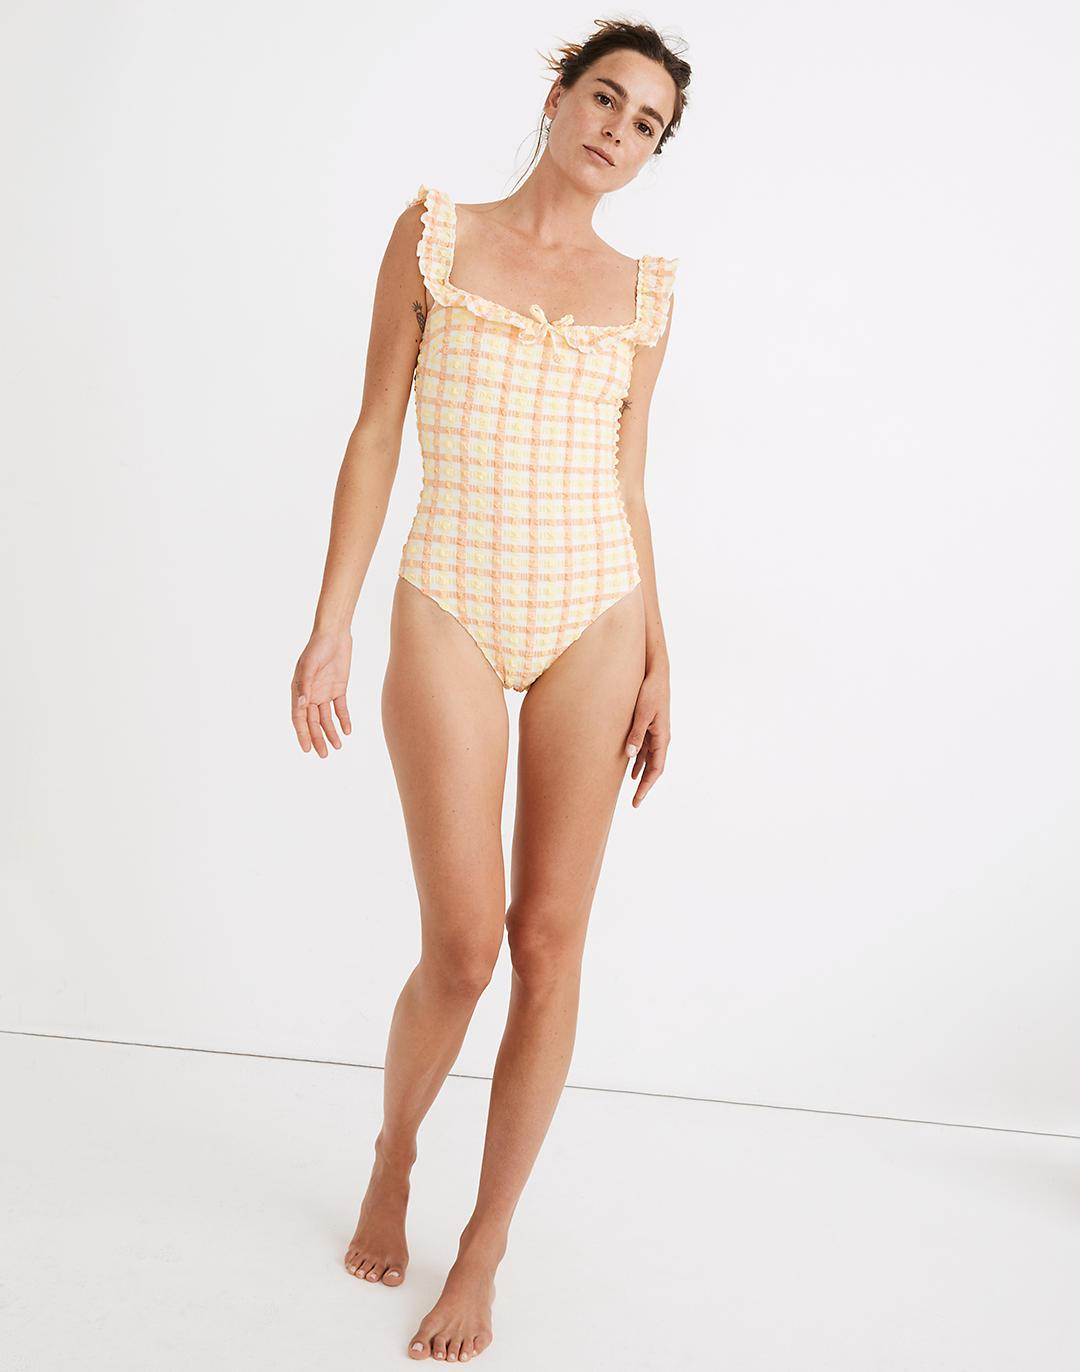 Madewell x Solid & Striped® Amelia One-Piece Swimsuit in Seersucker Gingham